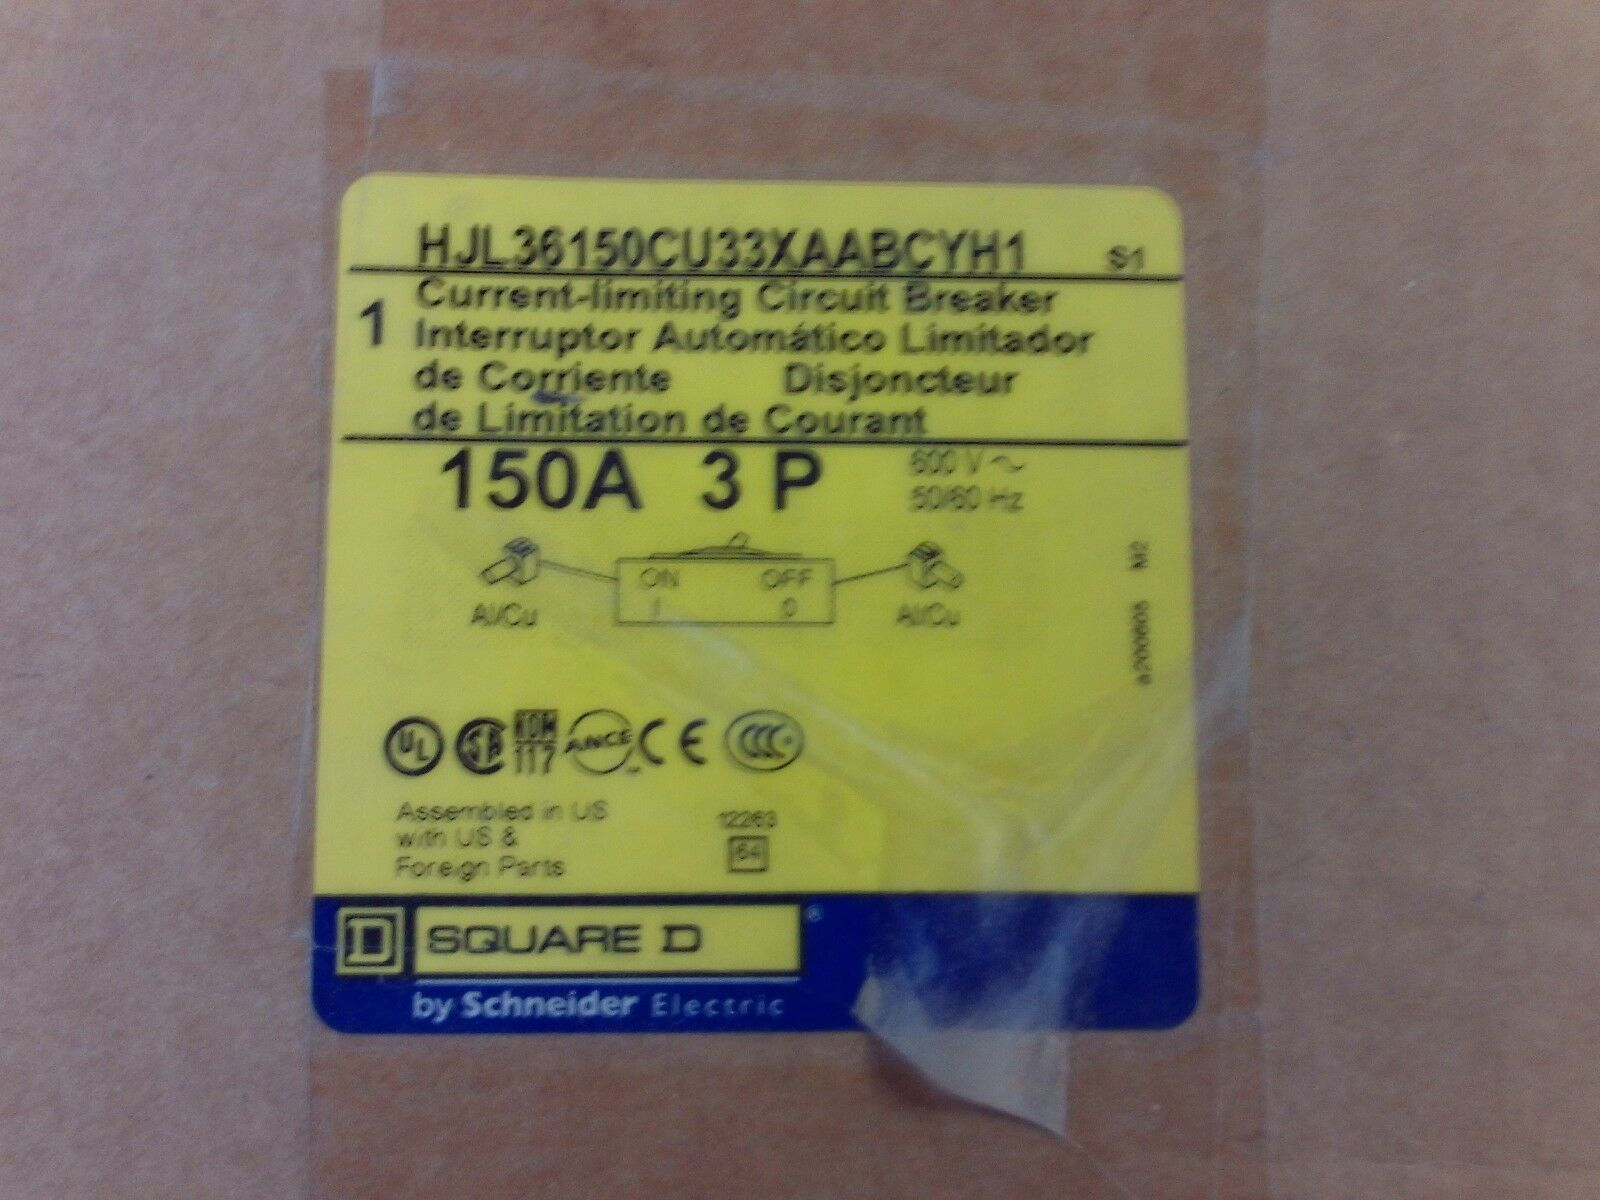 Square D Hjl36150 Hjl36150cu33xaabcyh1 Current Limiting Circuit B 1 Of 3only Available